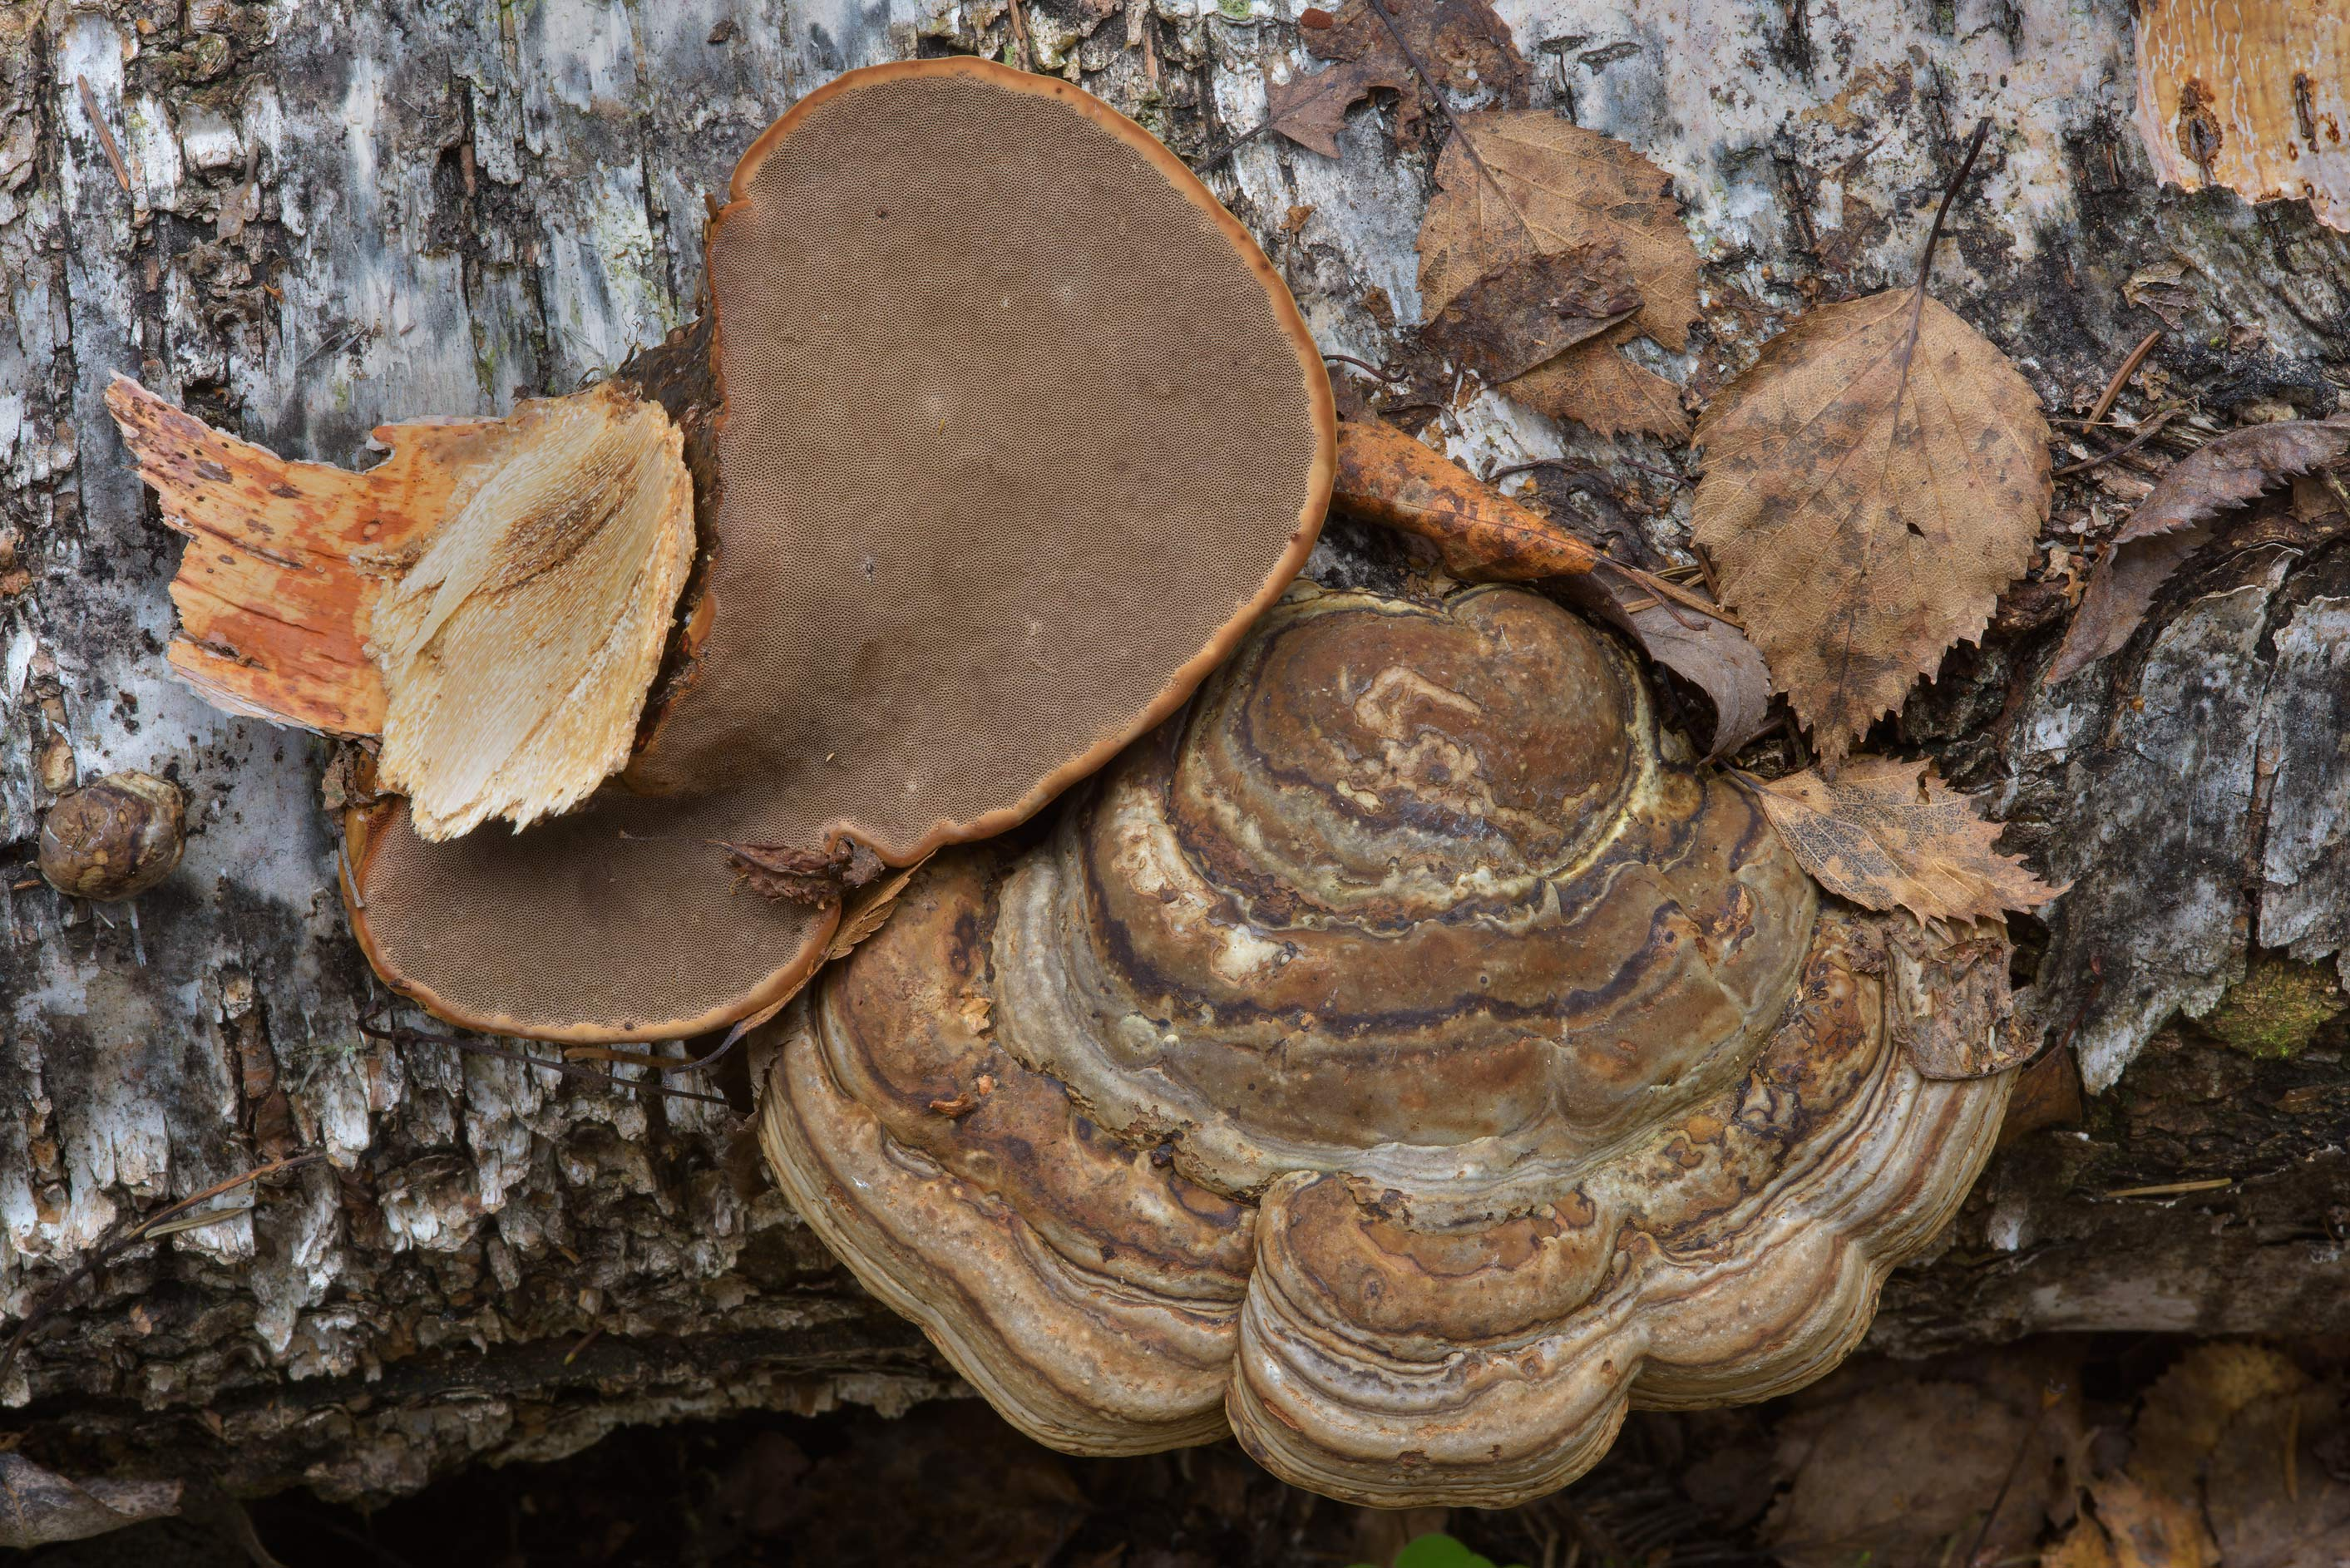 Tinder polypore mushrooms (bracket fungus, Fomes...north-west from St.Petersburg, Russia